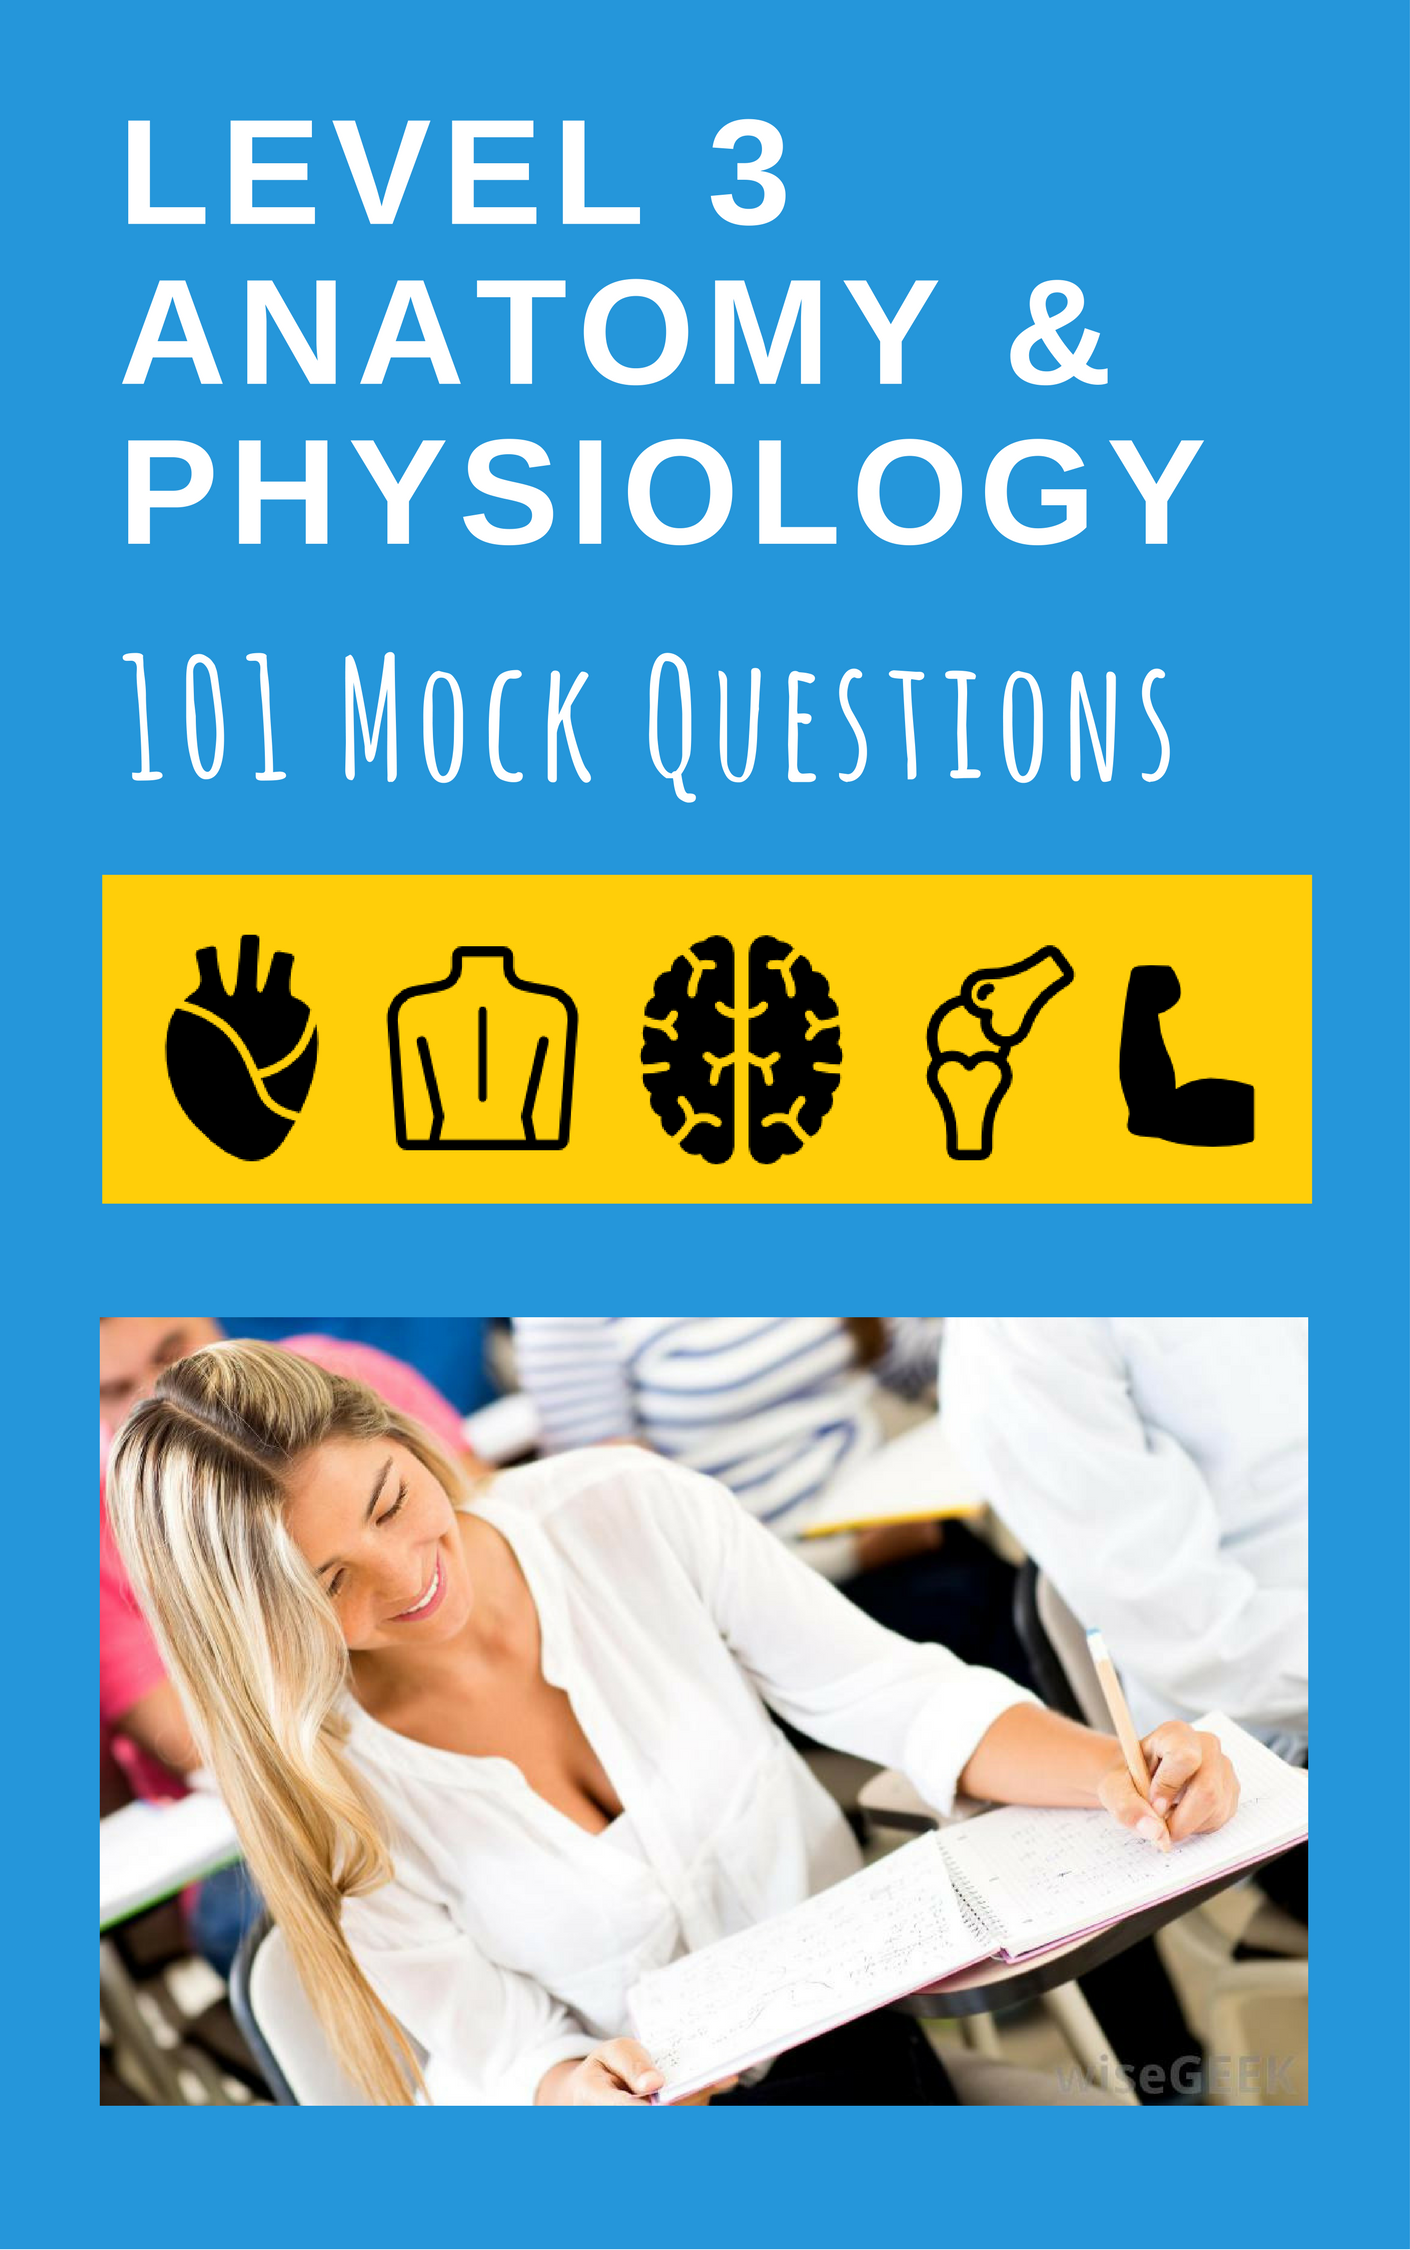 Download 101 Mock Questions NOW